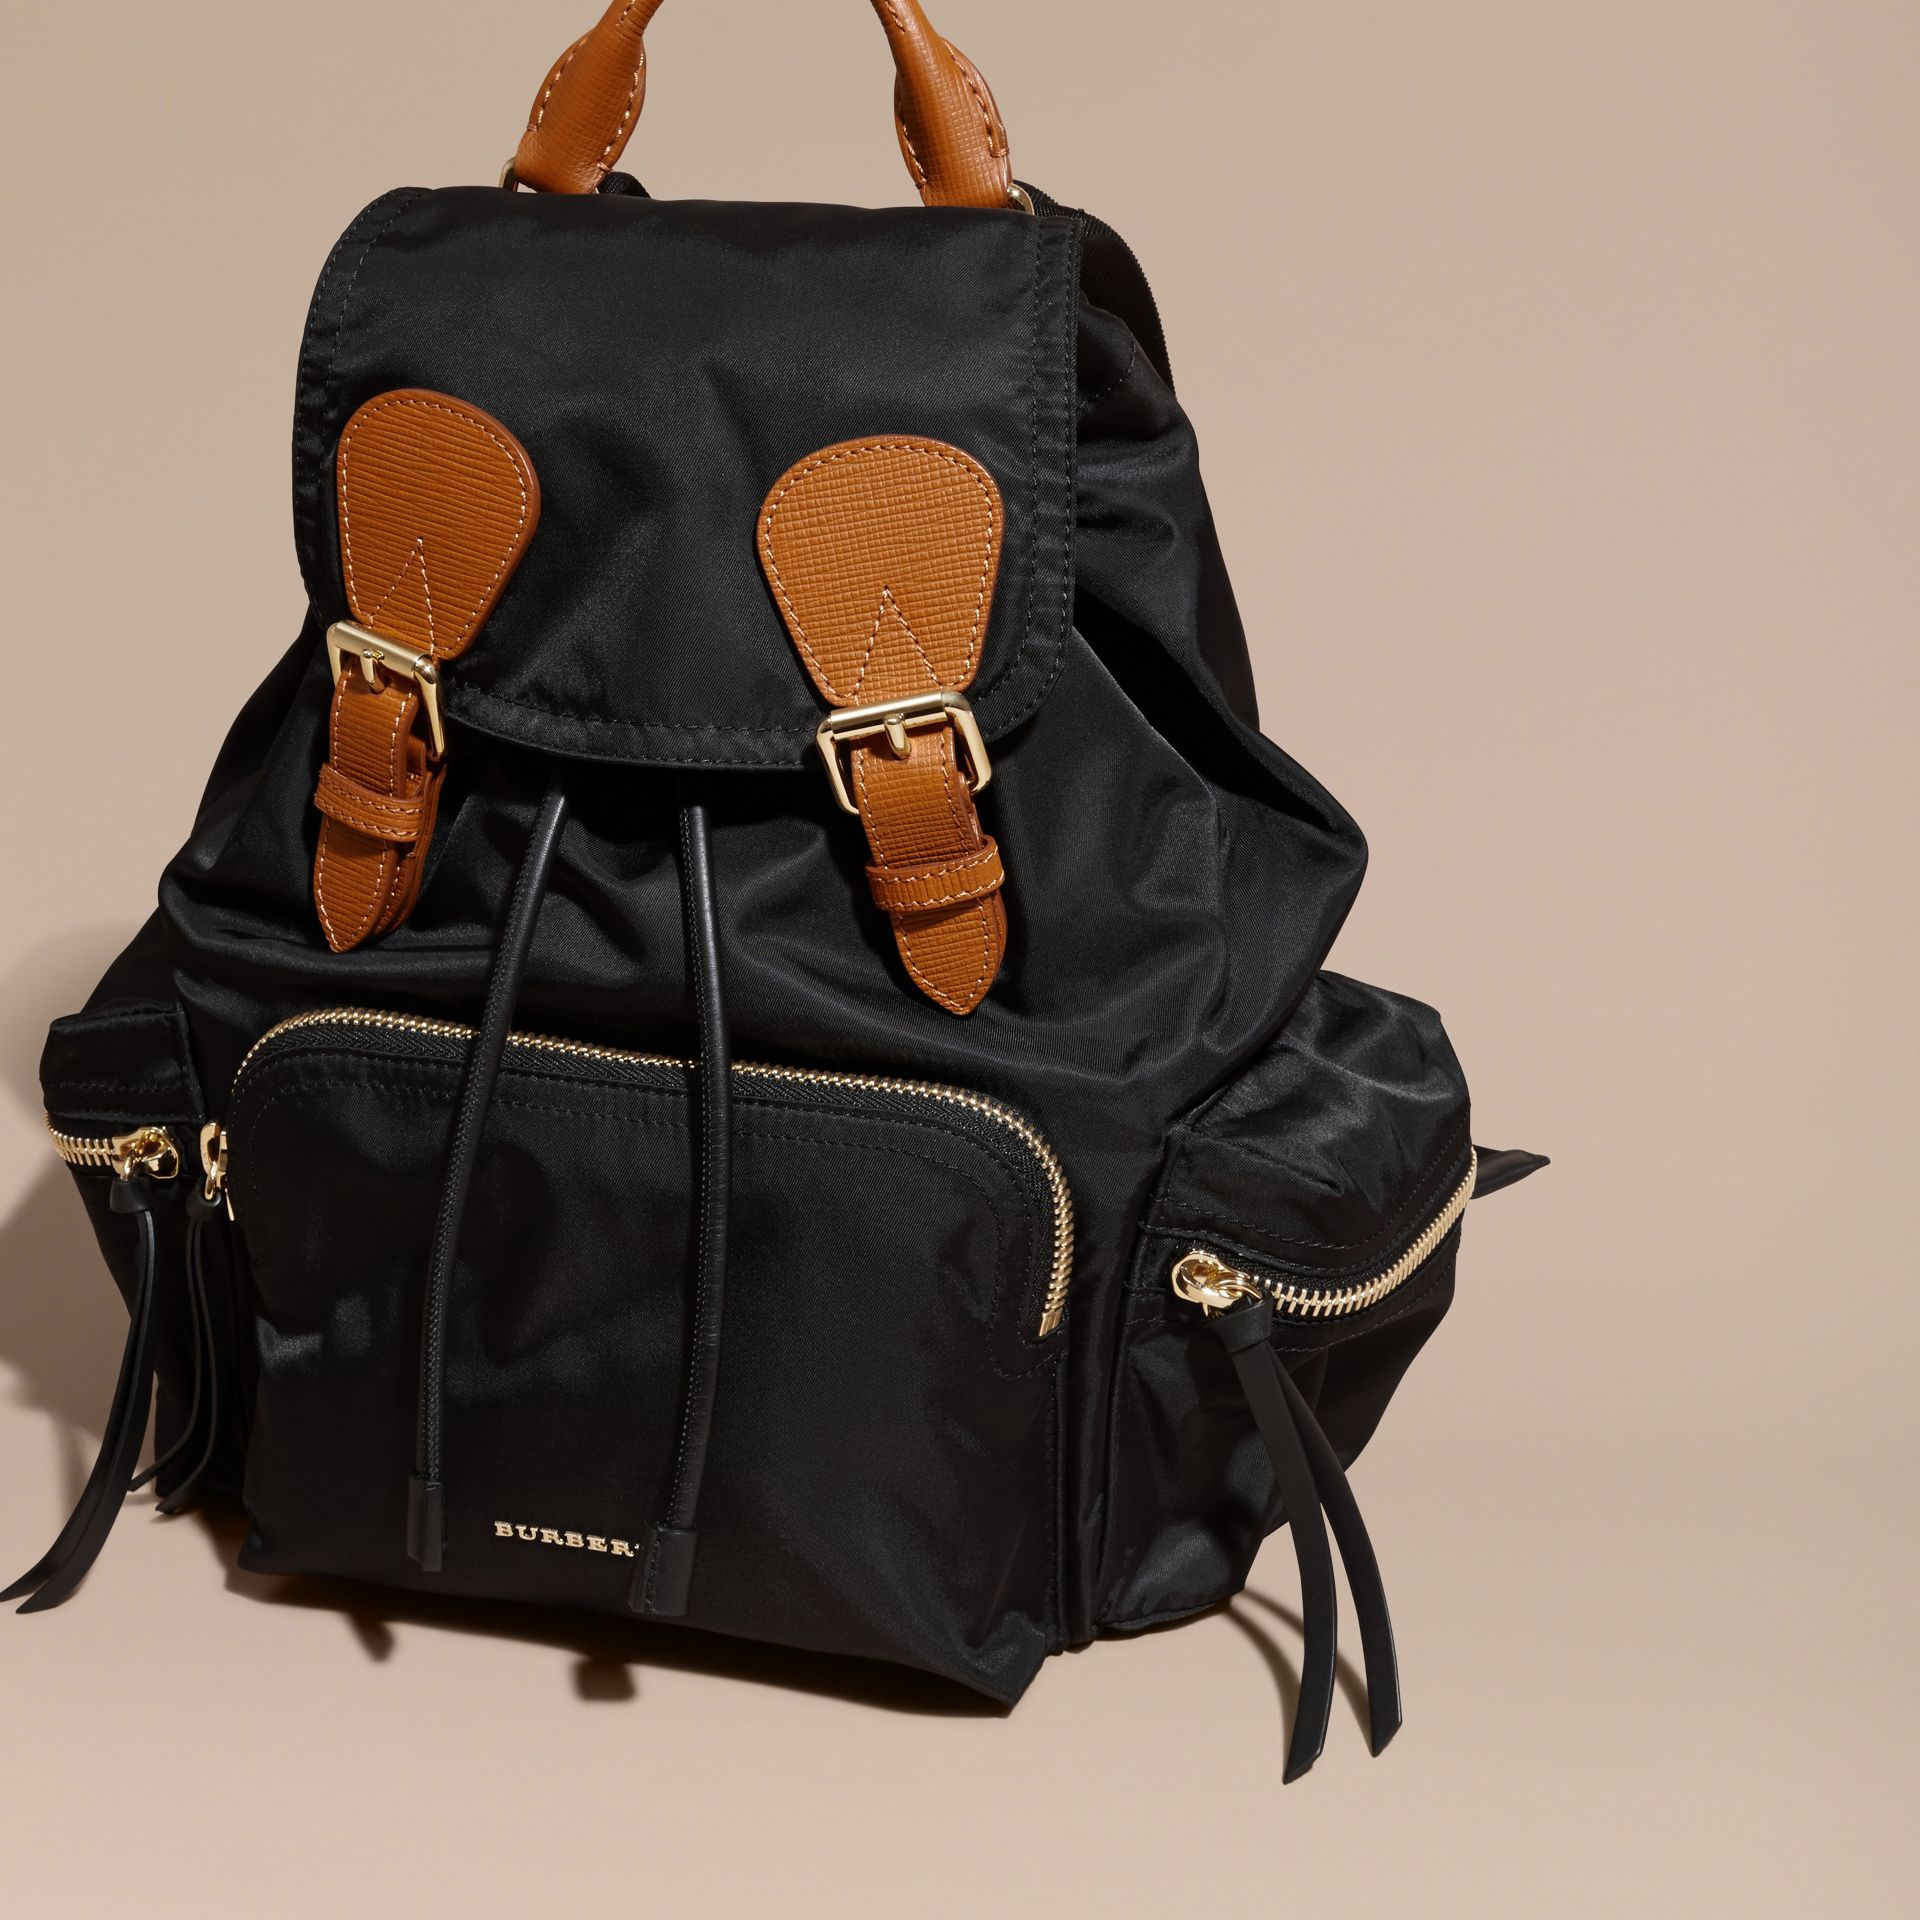 Black The Medium Rucksack in Technical Nylon and Leather Black - gallery image 8